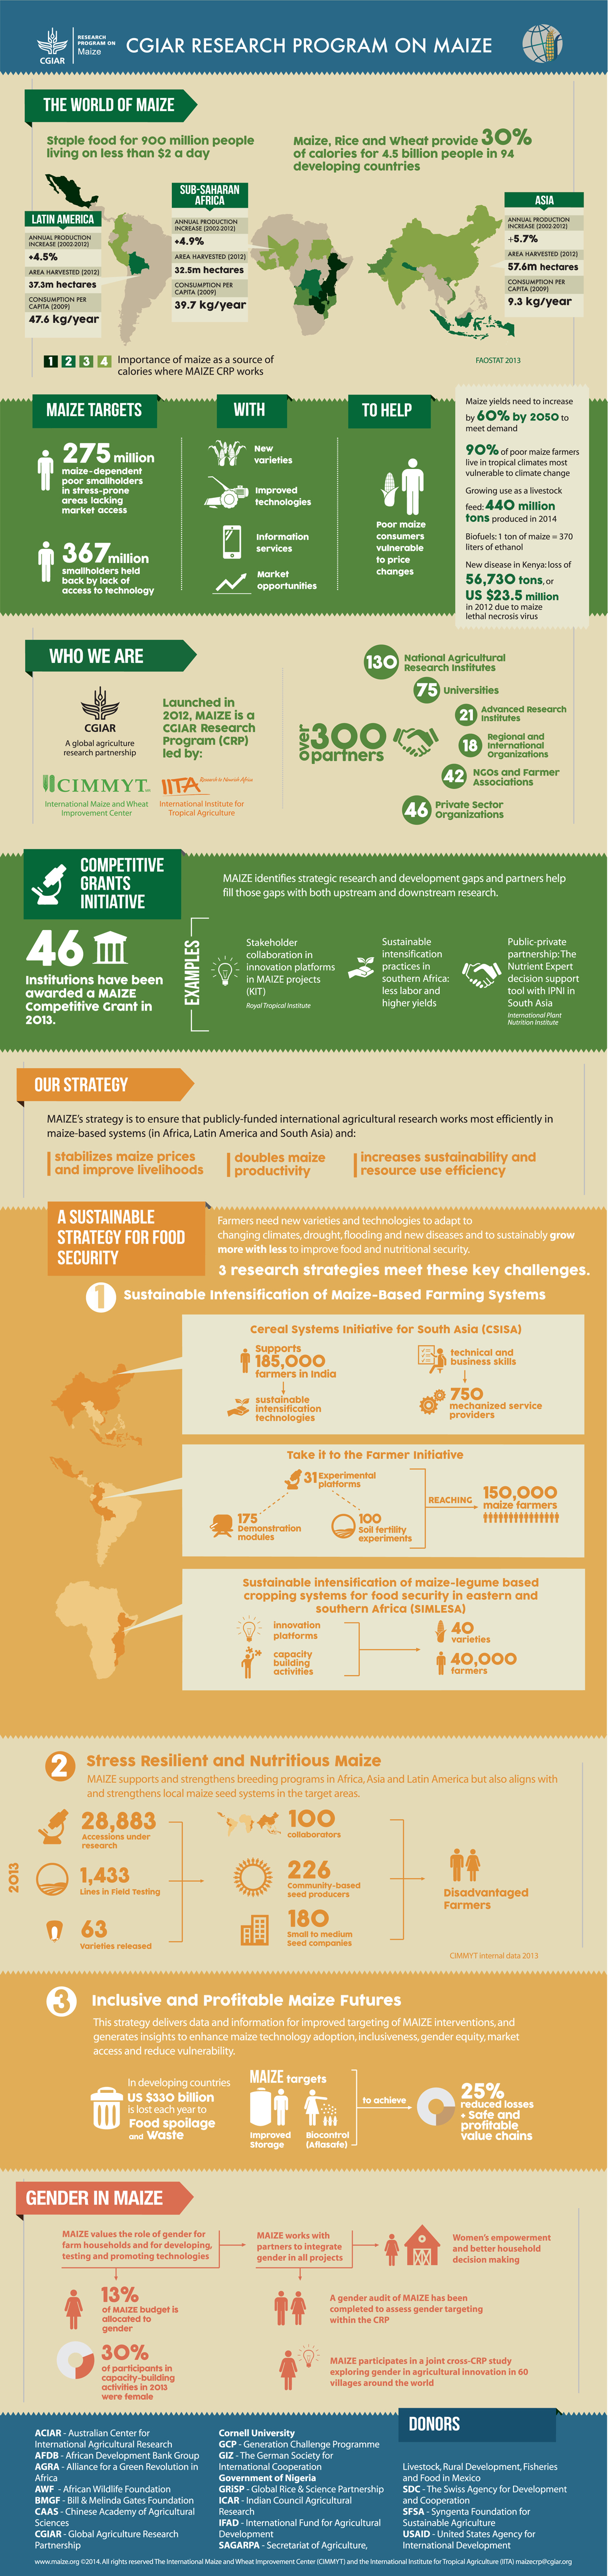 MAIZE CRP Infographic 2014